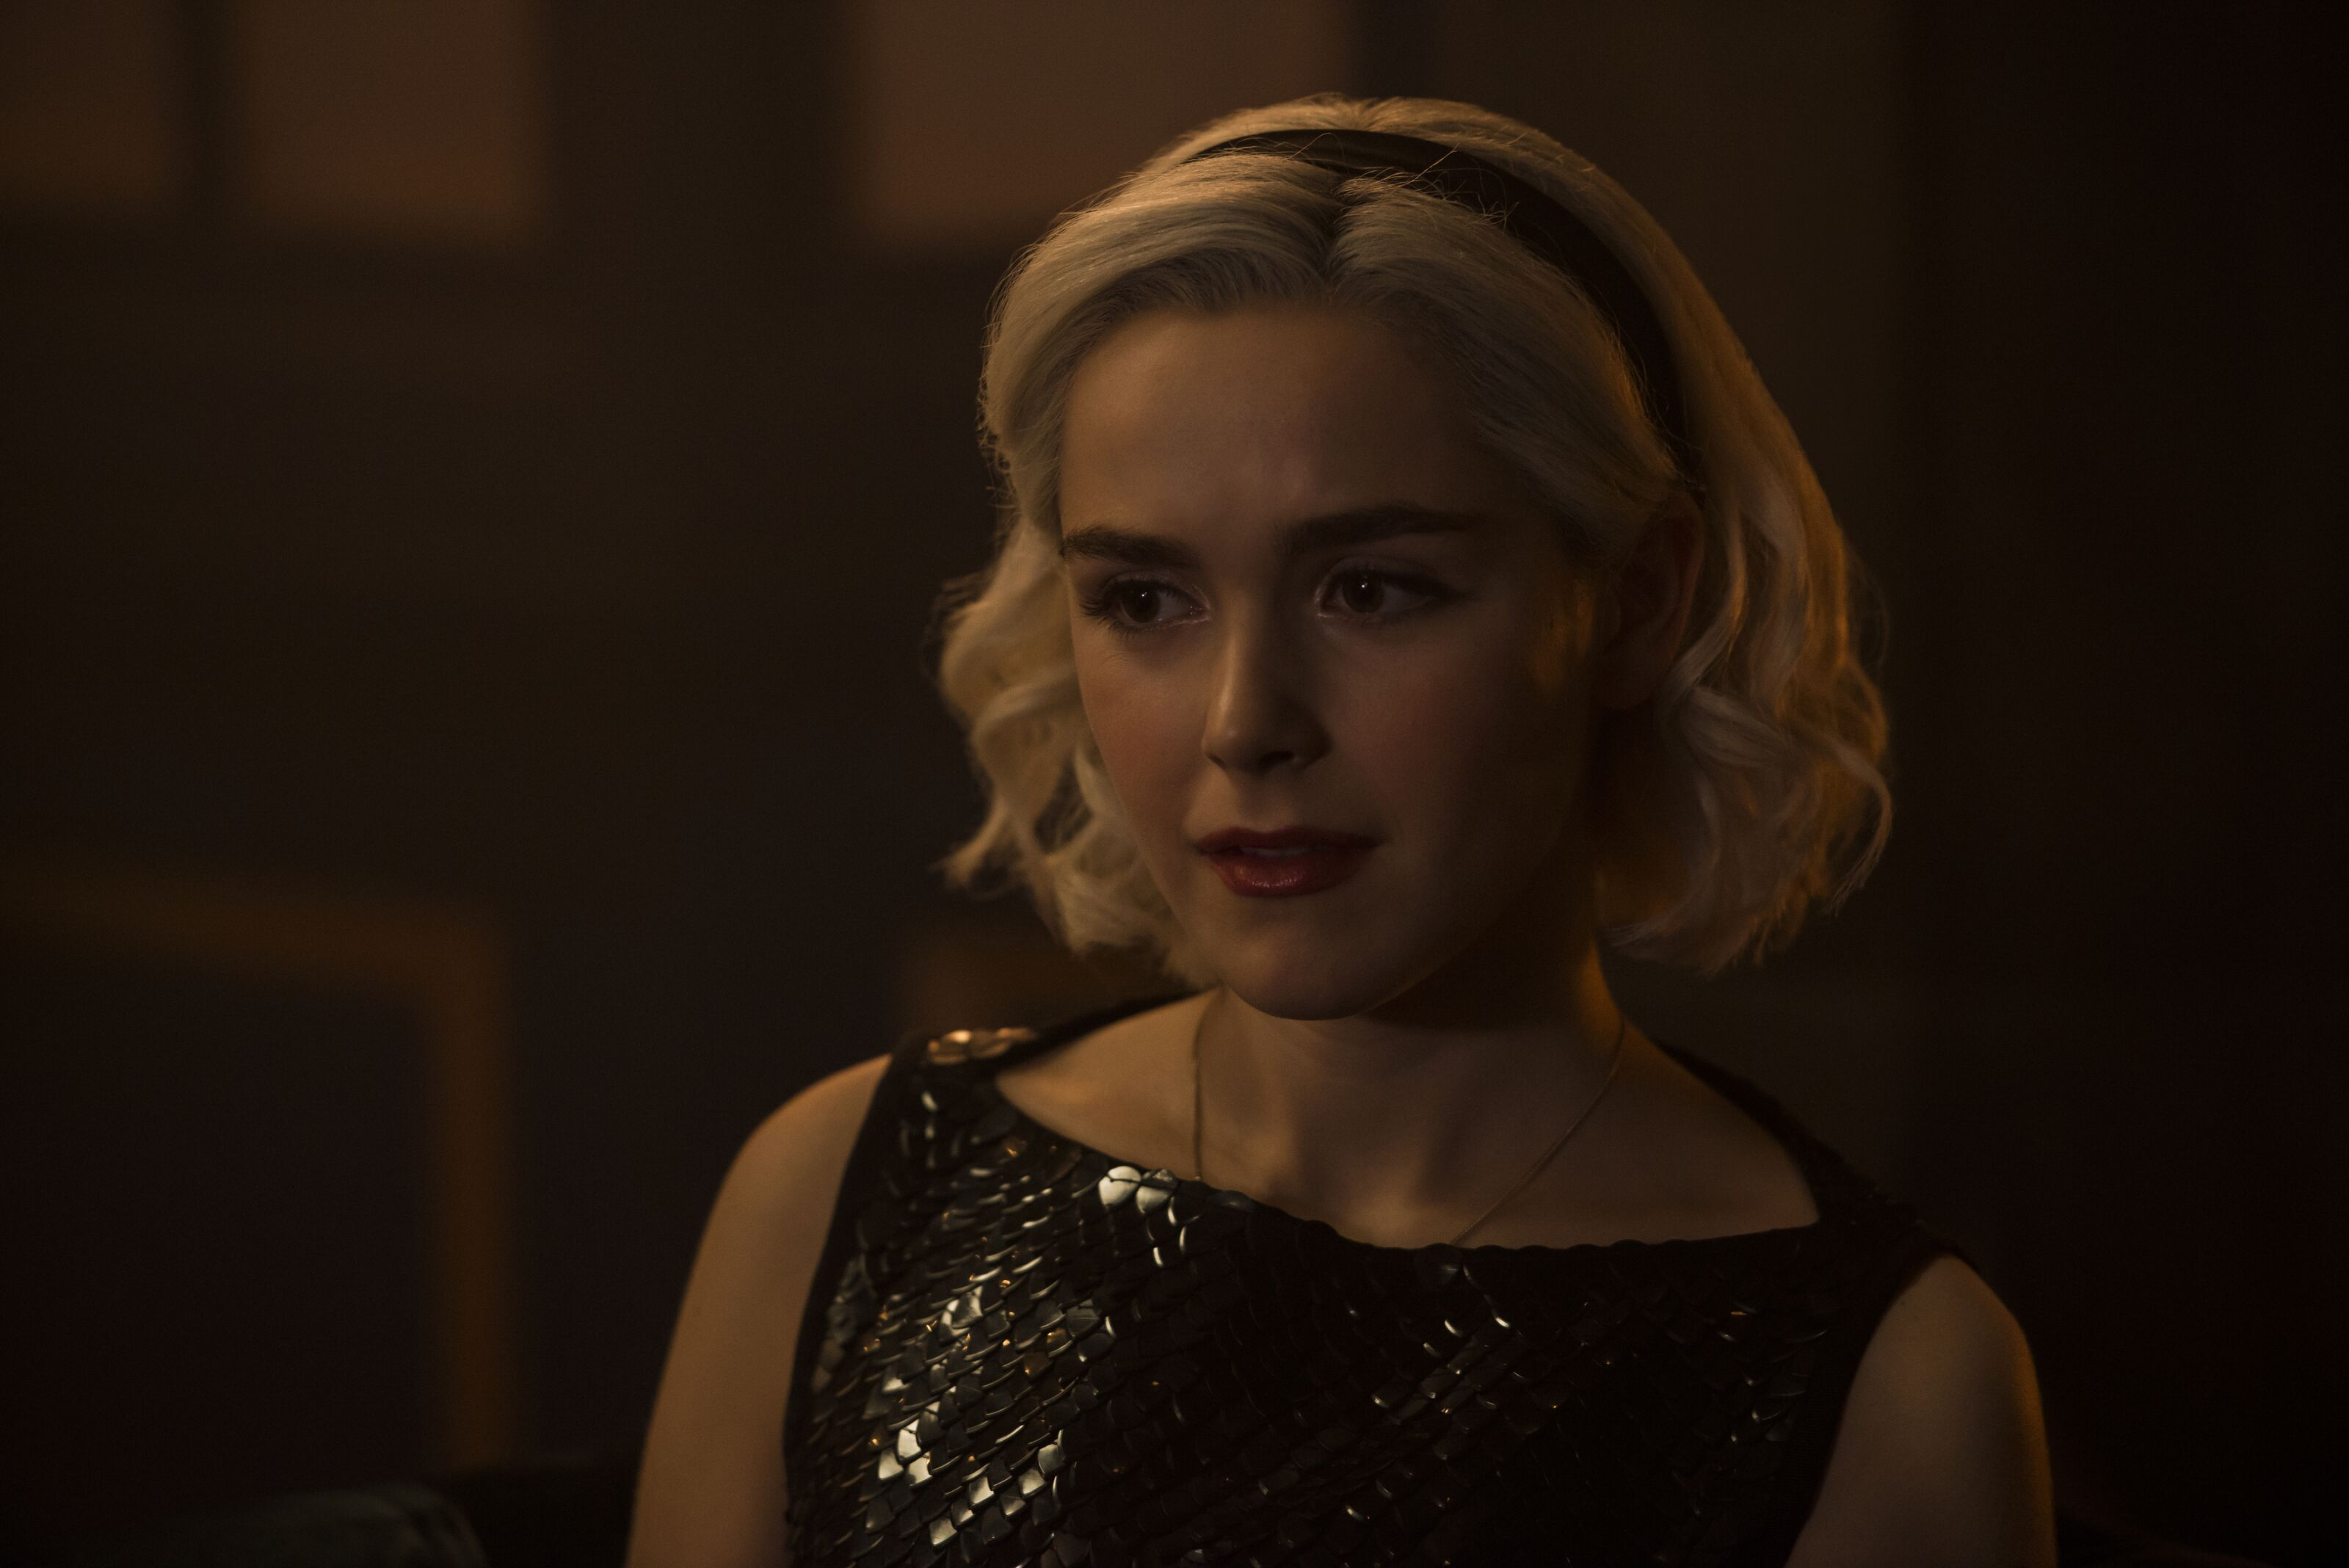 Chilling Adventures of Sabrina makeup collection lets us channel our inner witch